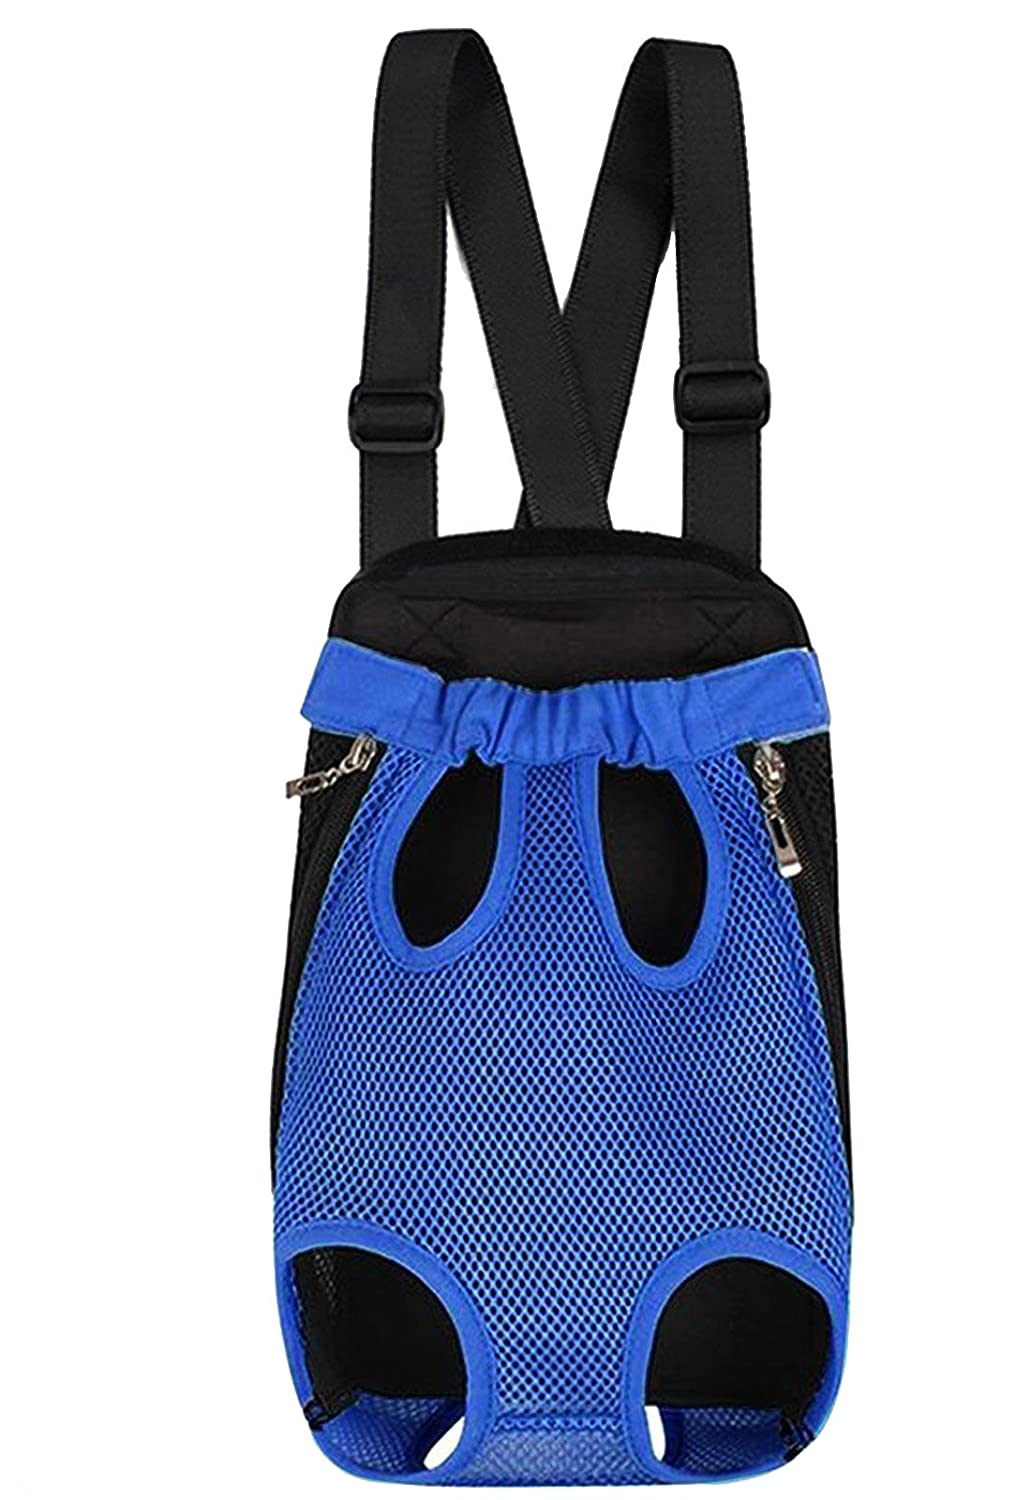 bluee XL bluee XL Funny-Honey Legs Out Front Chest Pet Carrier Backpack bluee Dog Travel Bag for Outdoor Hiking XL